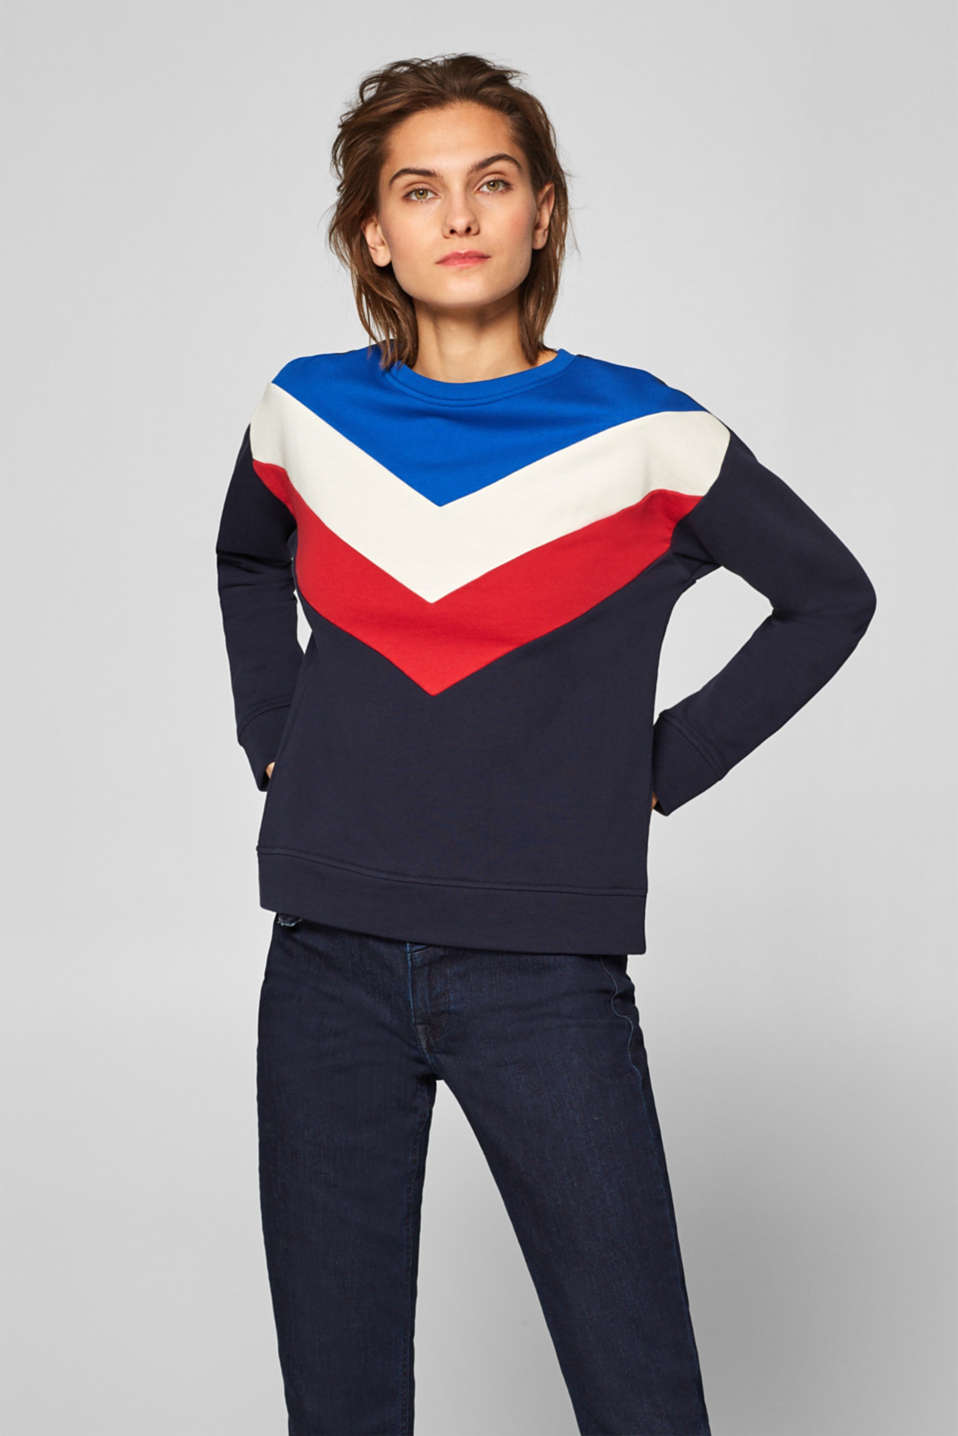 Esprit - Sweatshirt in a colour block design, 100% cotton